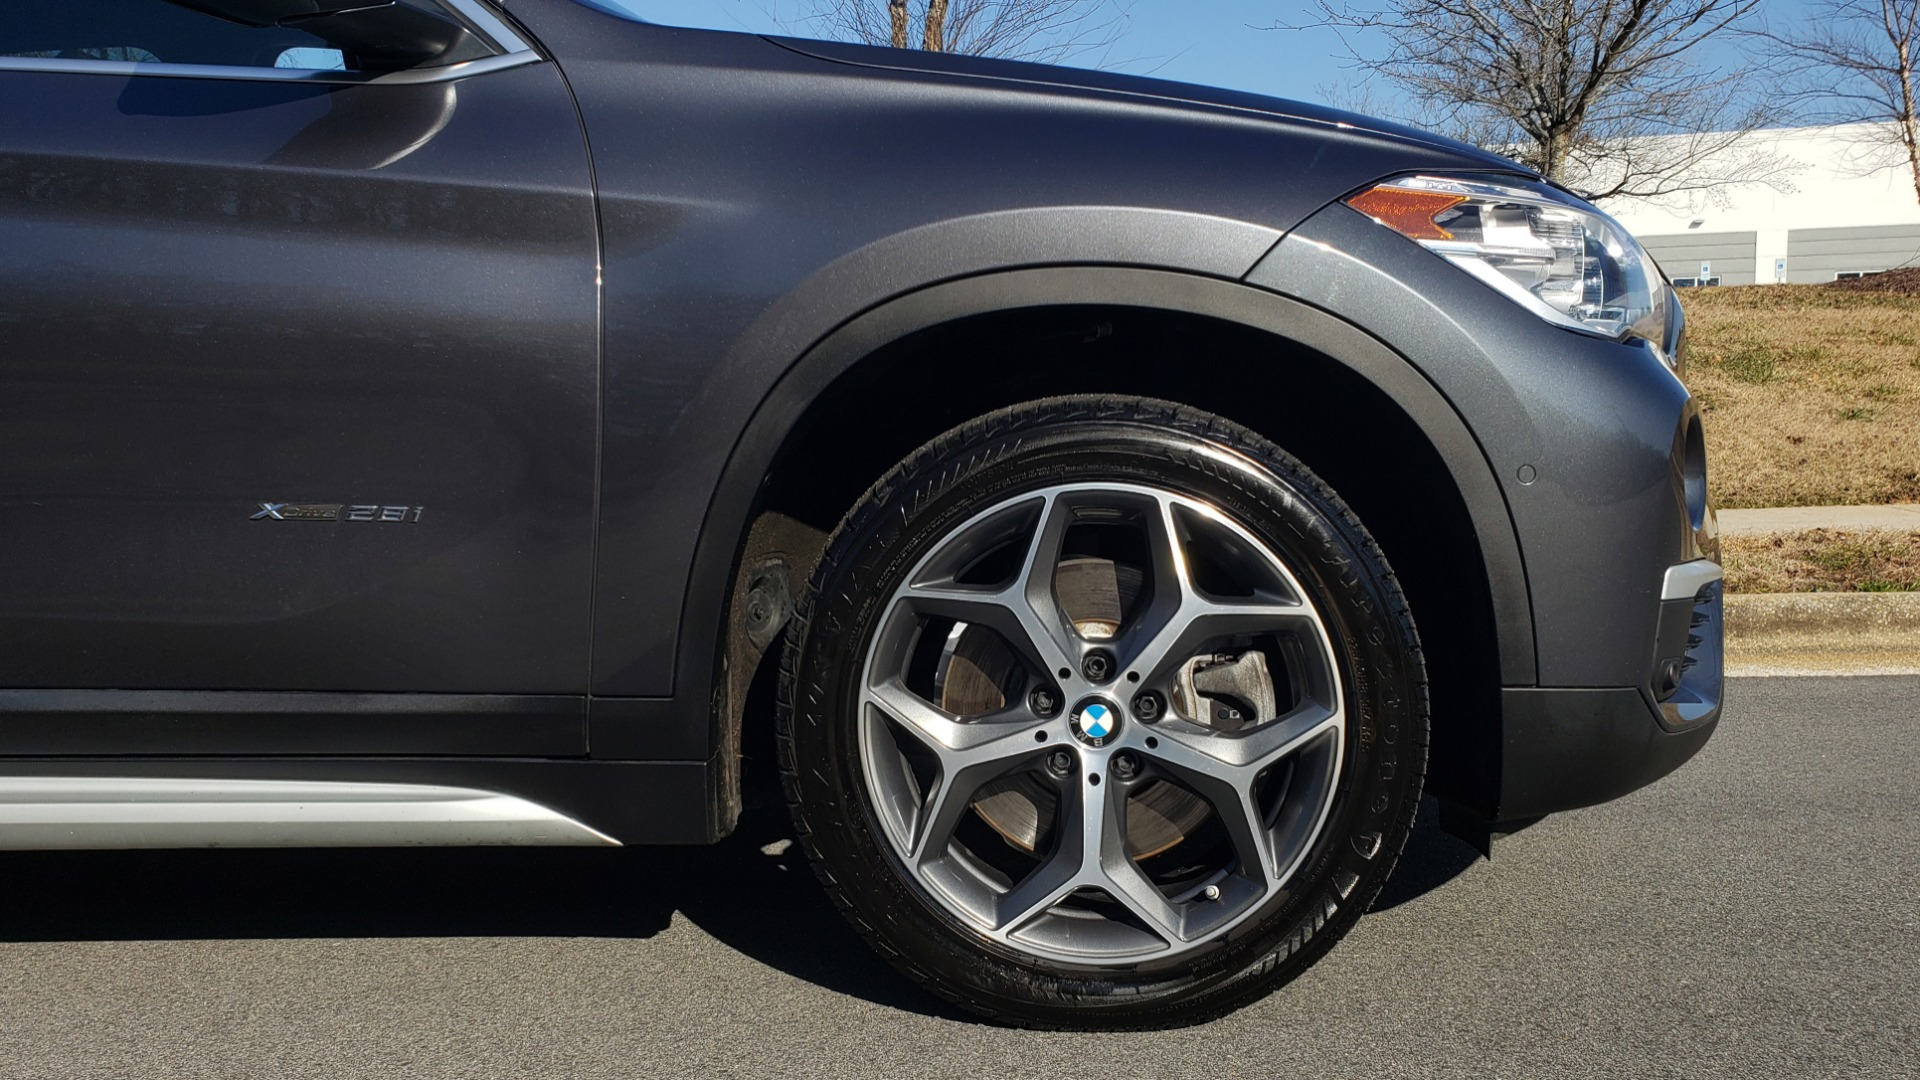 Used 2017 BMW X1 XDRIVE28I / PREM / TECH / DRVR ASST PLUS / COLD WTHR / REARVIEW for sale Sold at Formula Imports in Charlotte NC 28227 83